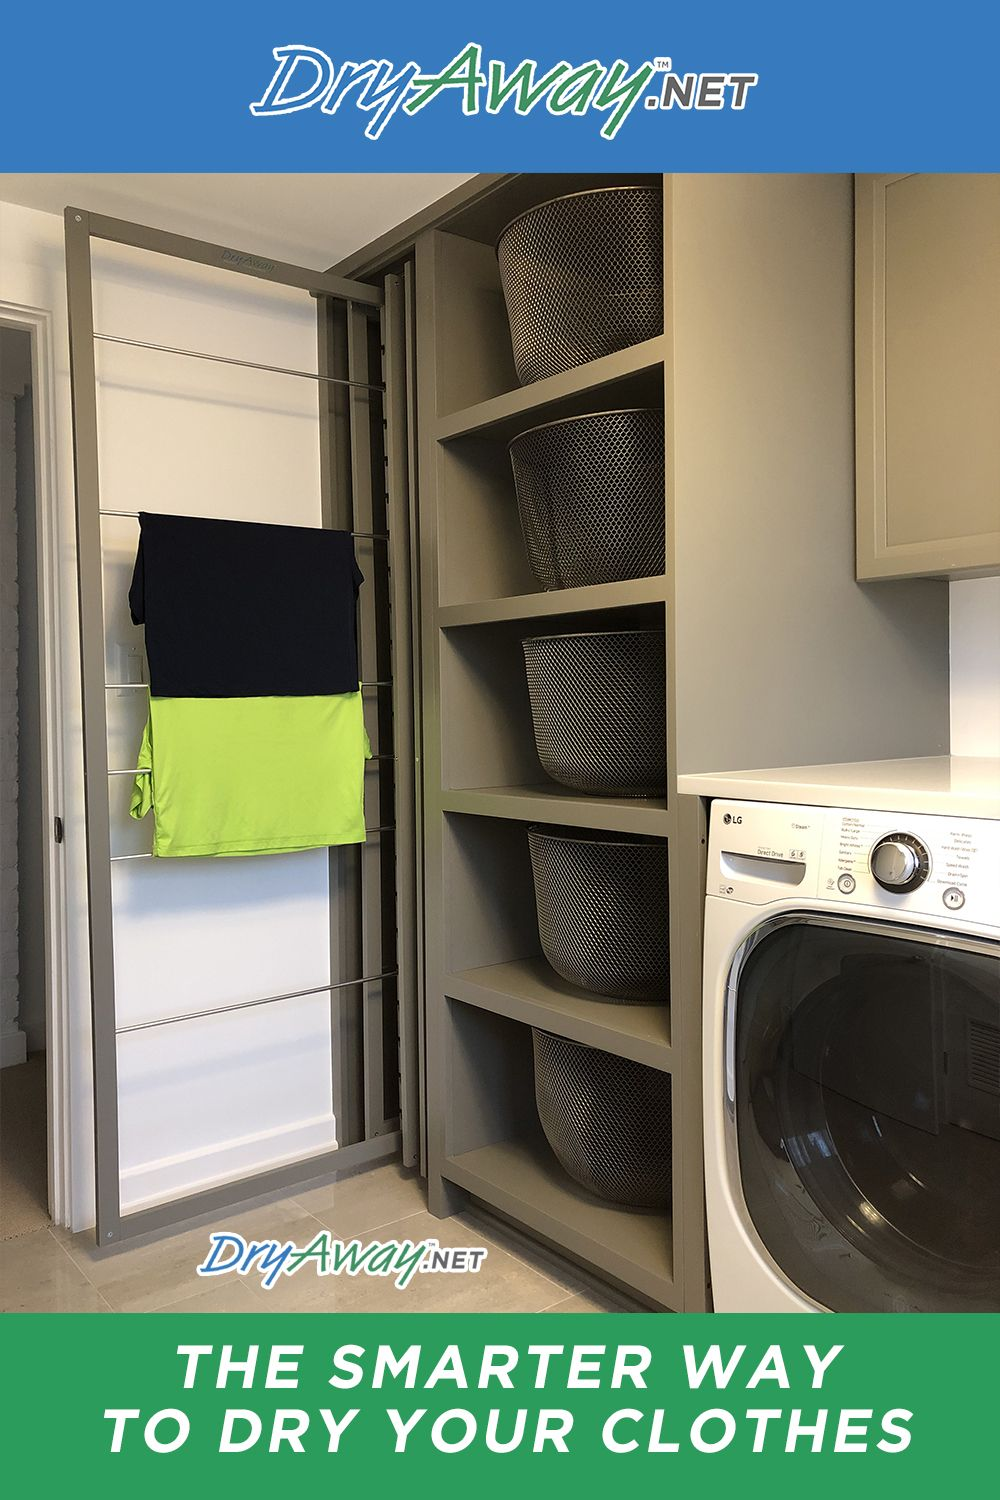 Eco Friendly Built In Laundry Room Clothes Drying Racks Dryaway Clothes Drying Racks Laundry Room Laundry Room Design